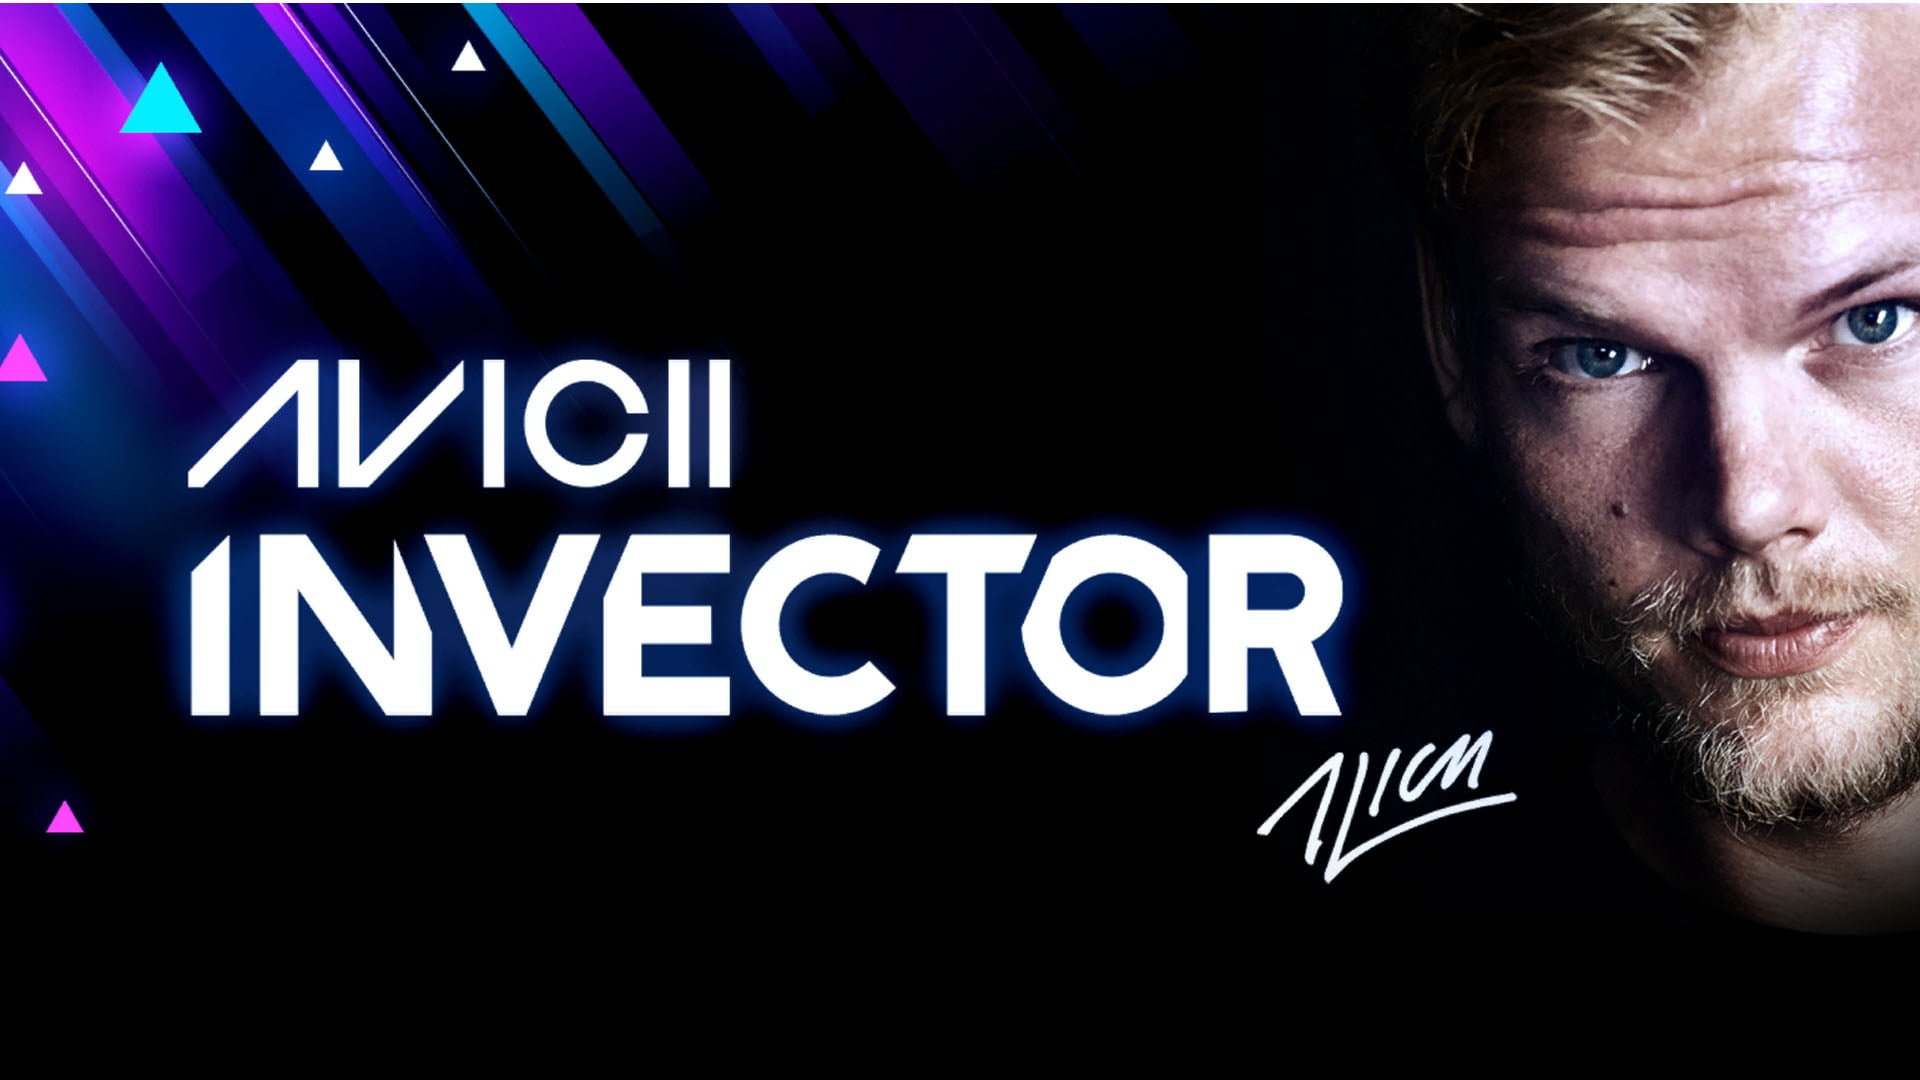 AVICII: Invector (PS4) review